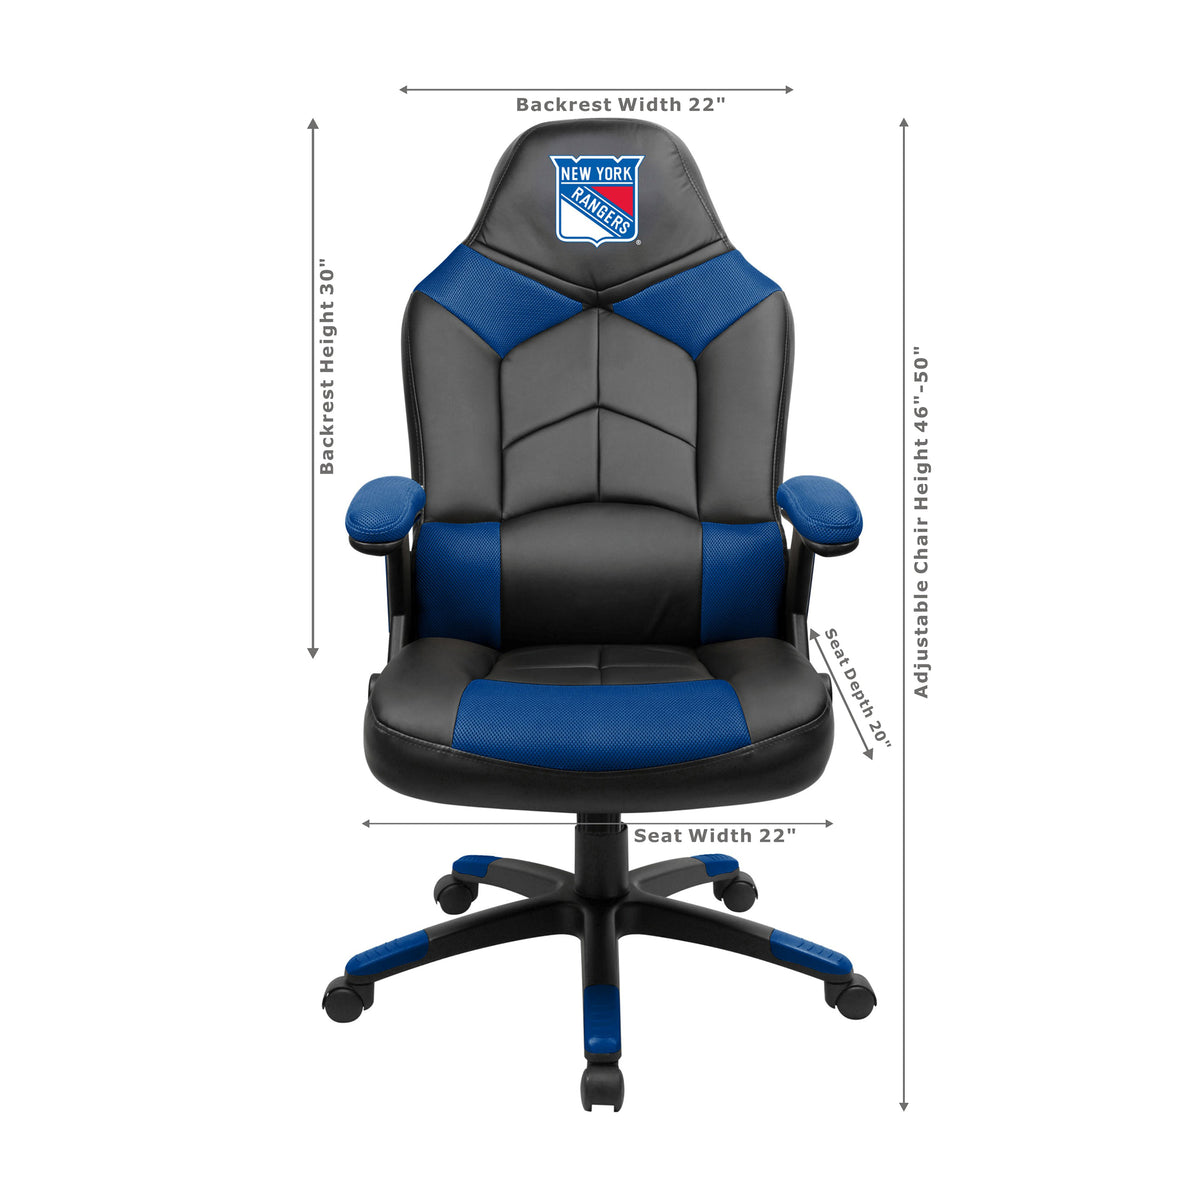 New York Rangers Oversized Game Chair